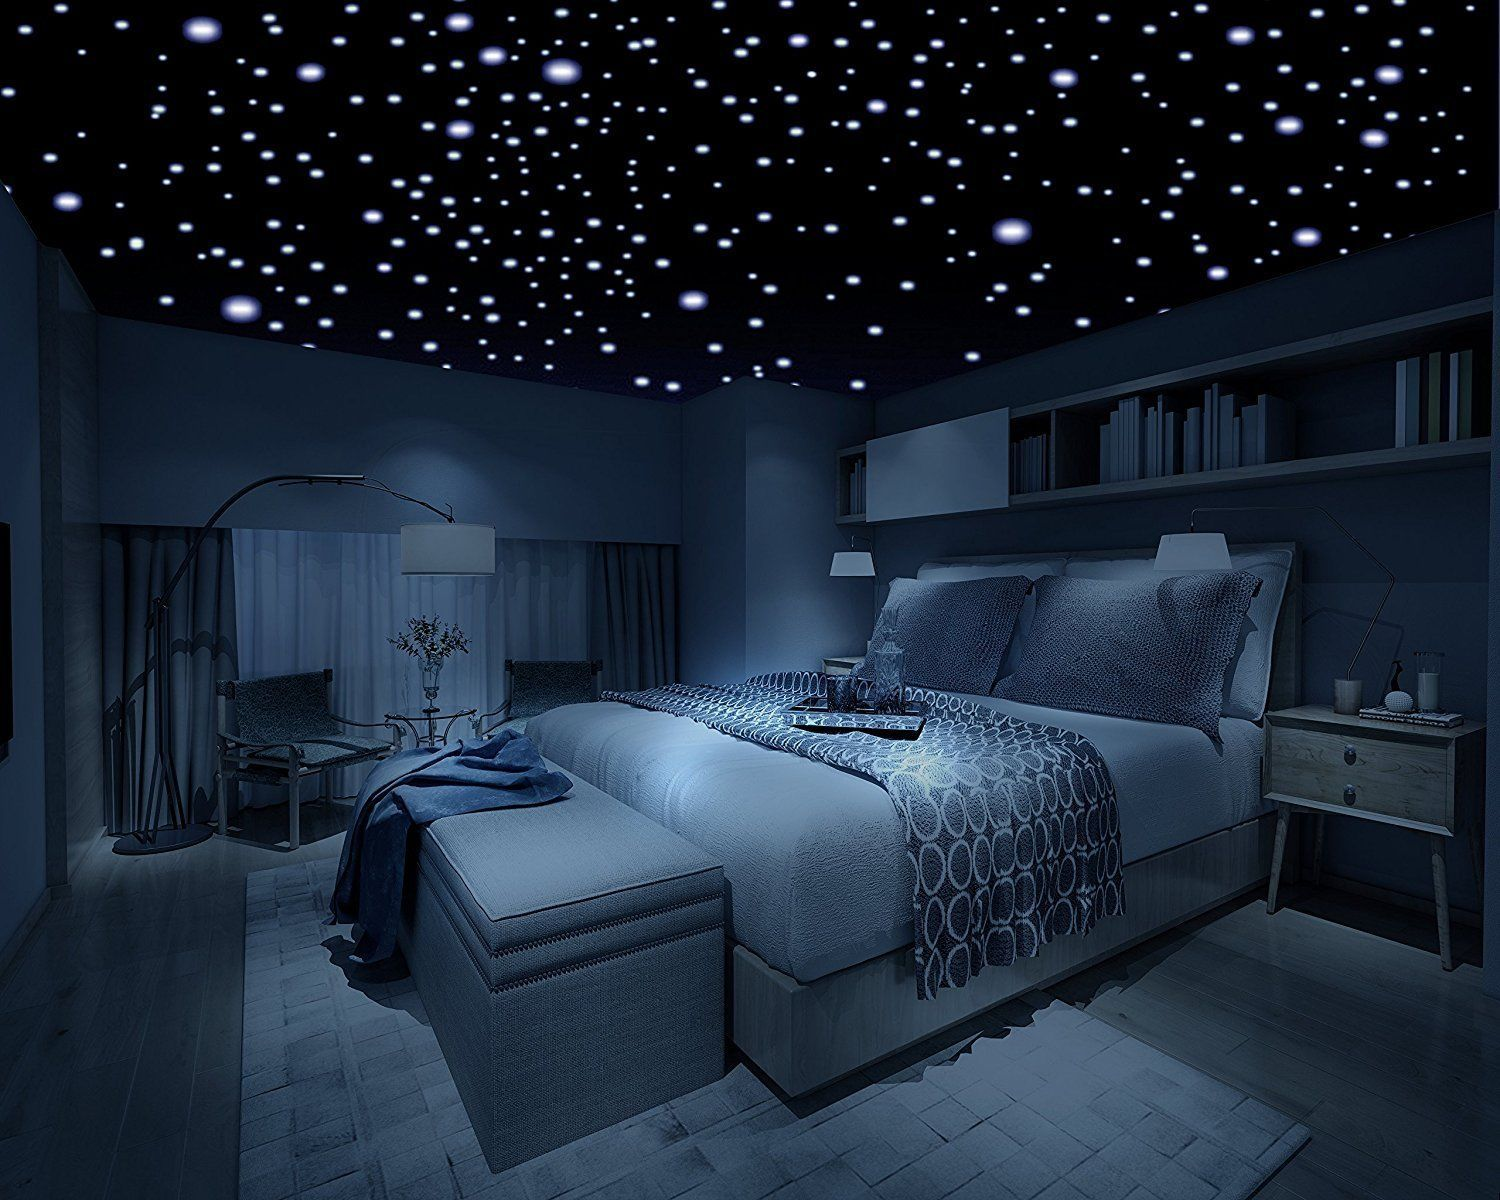 Removable Decal Art Mural Home Kids Bedroom Decor Wall Sticker Dark Stars 3D NEW is part of Kids bedroom Decoration -